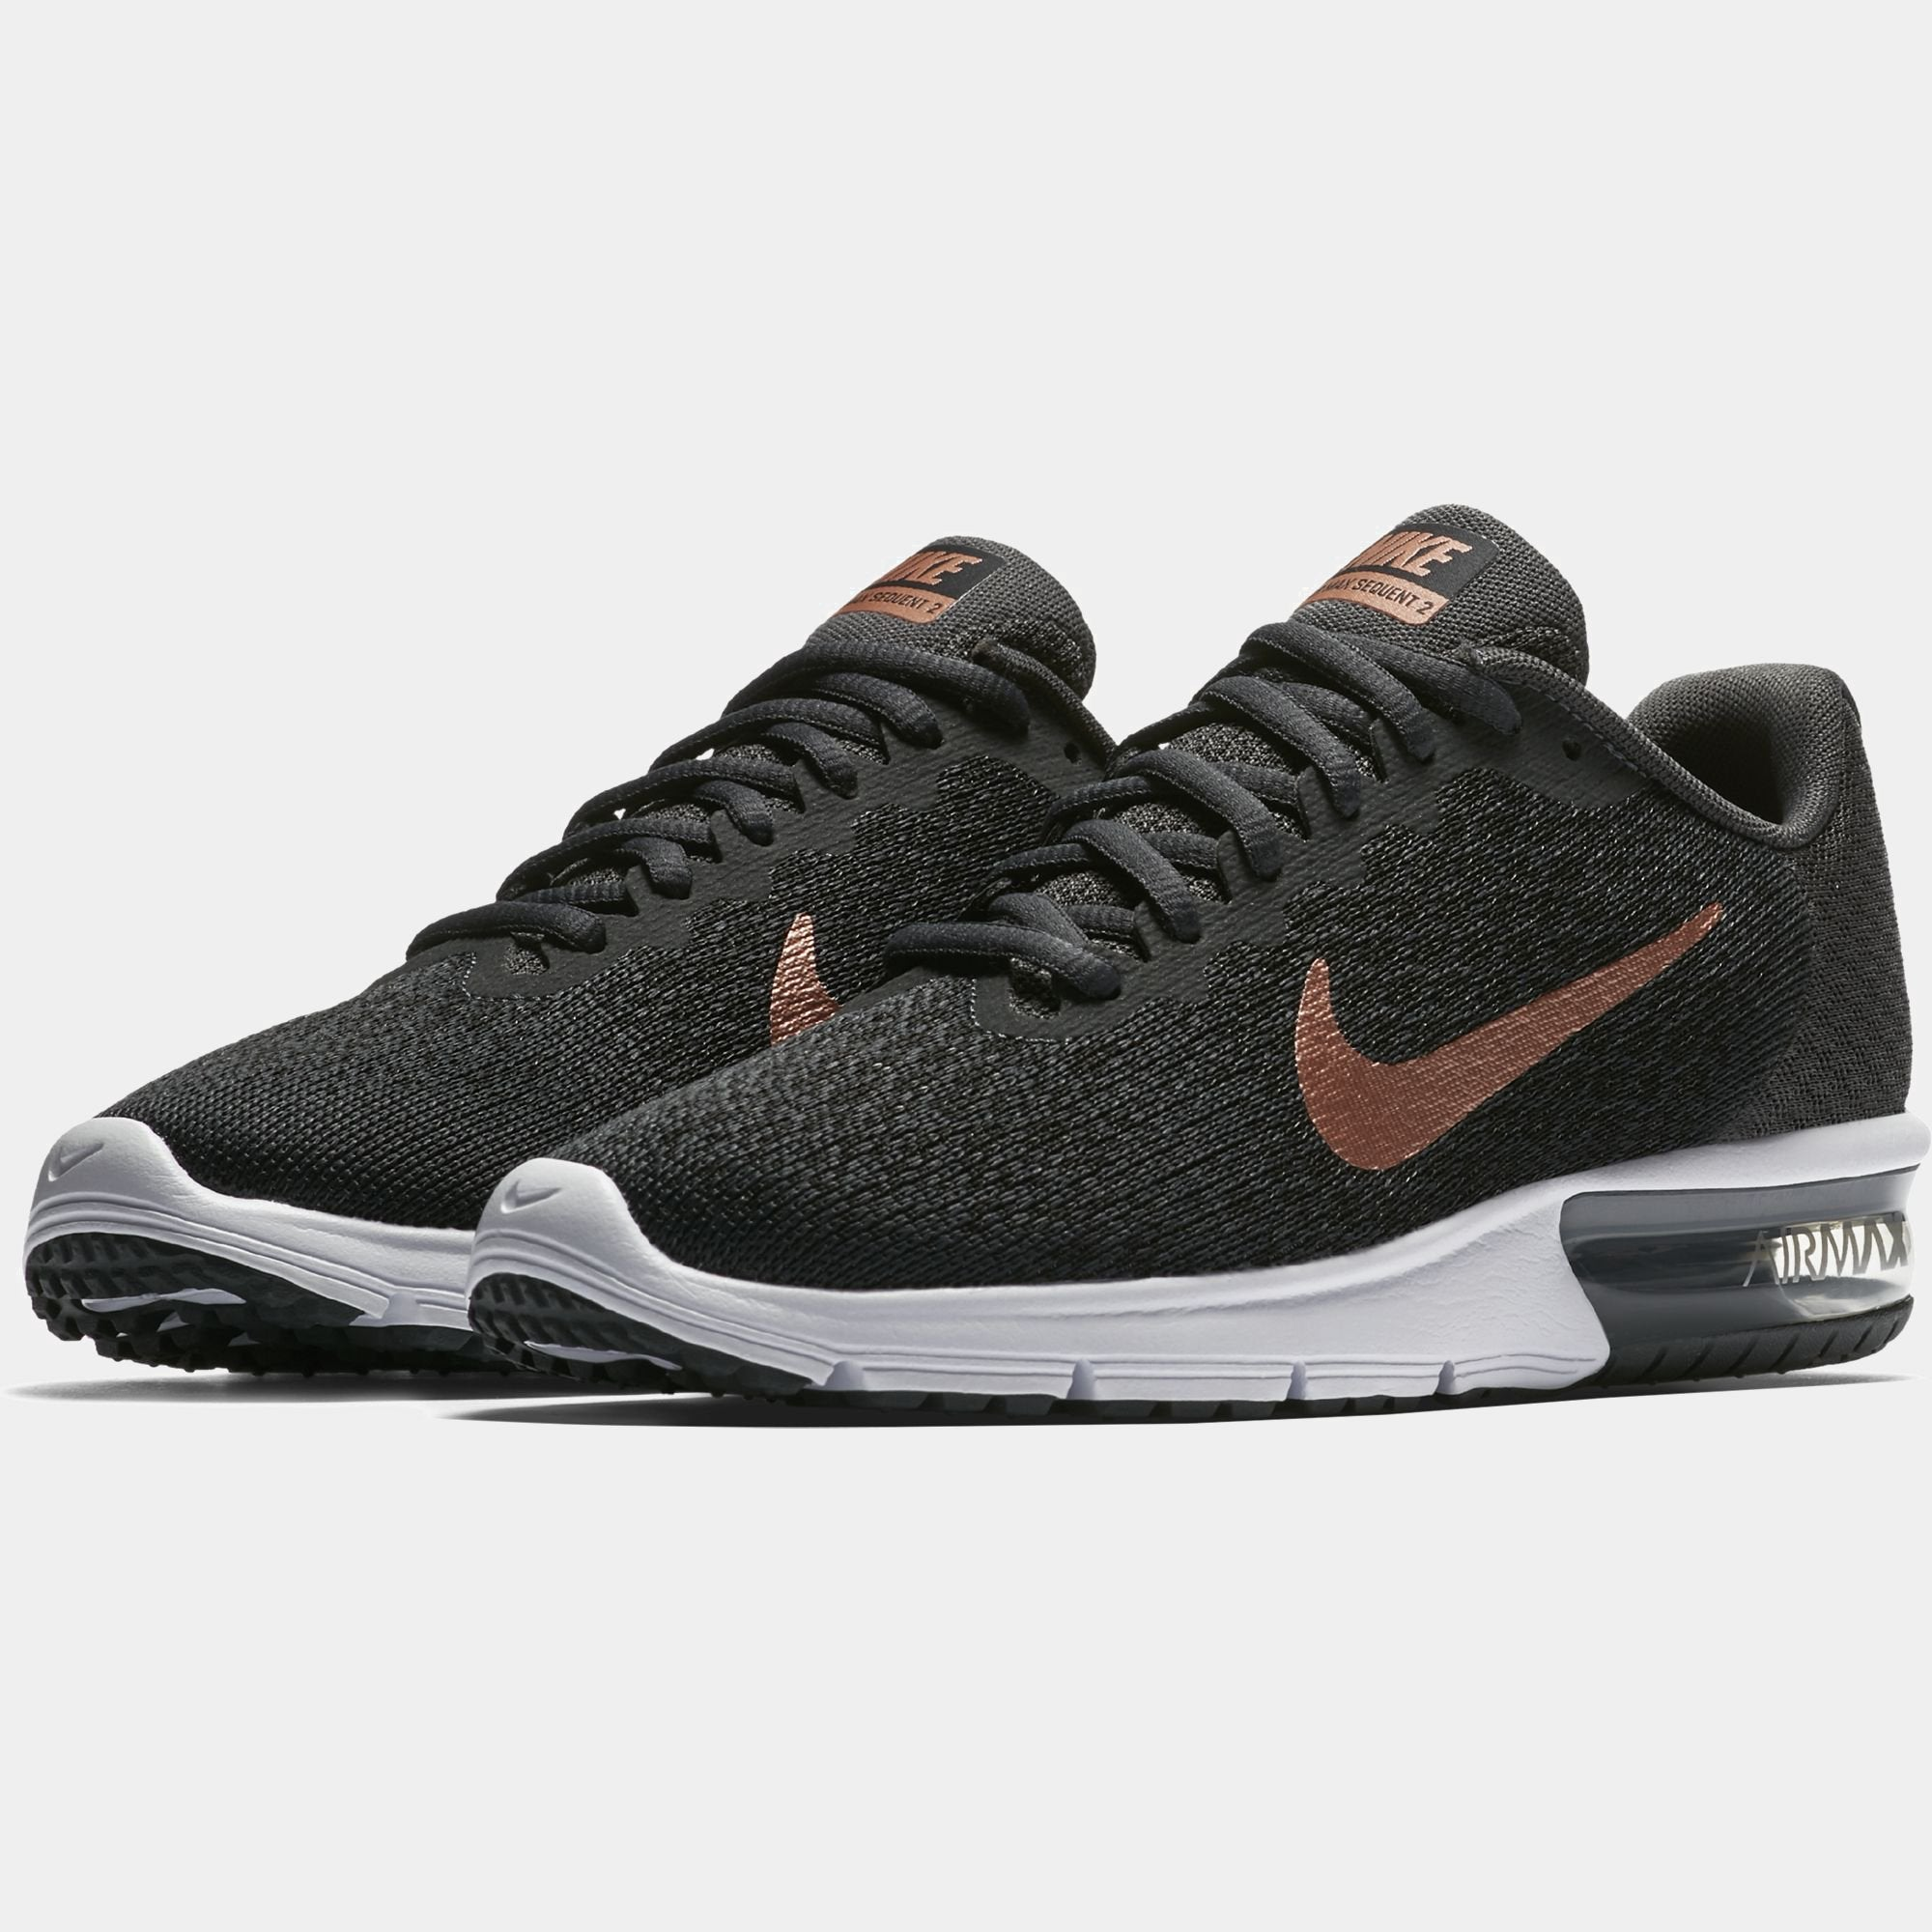 02c09d544f Home. > Nike. > Women's Nike Air Max Sequent 2 Running Shoe